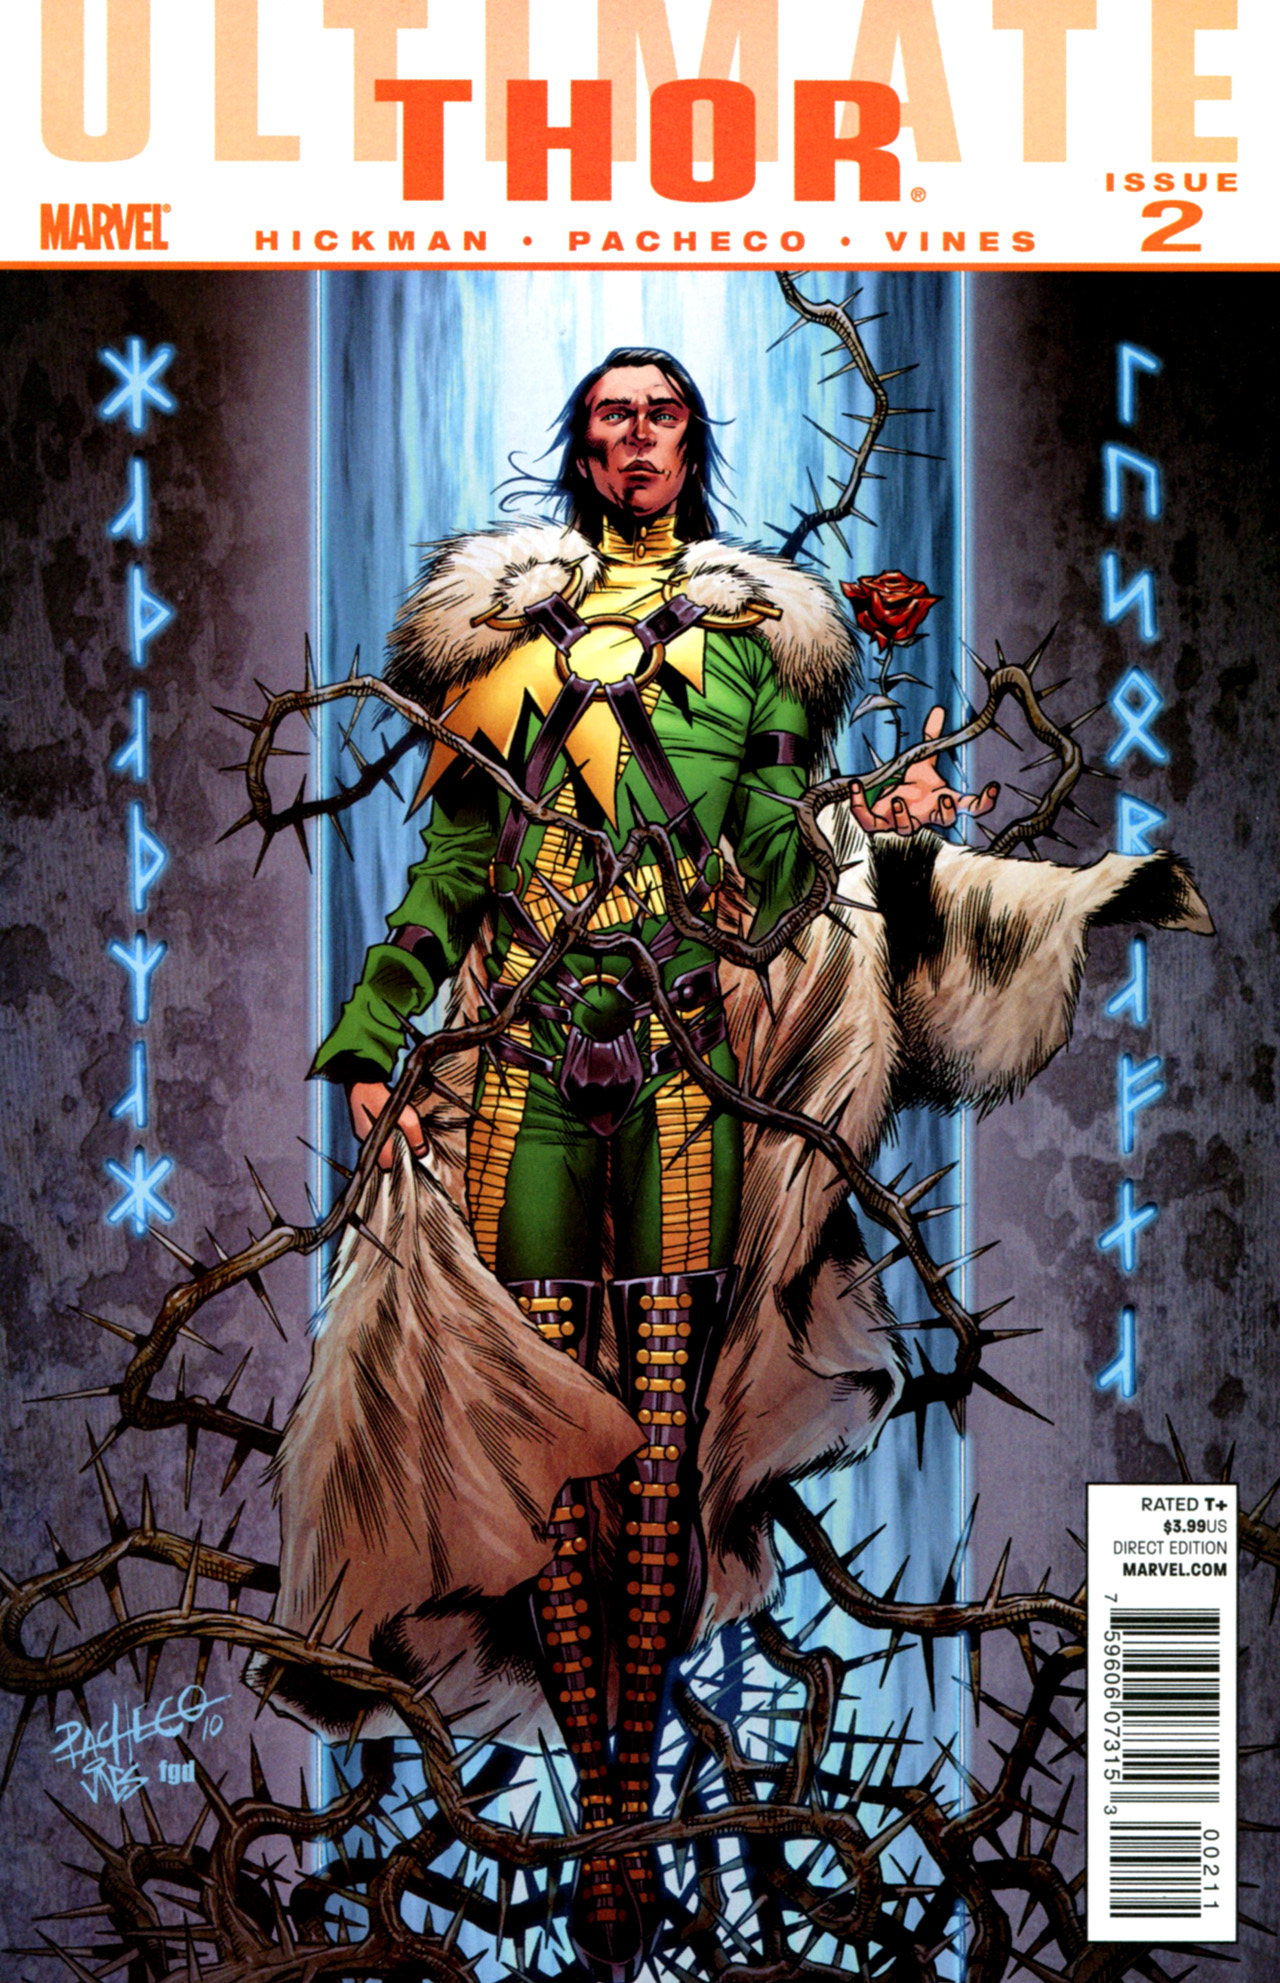 Read online Ultimate Thor comic -  Issue #2 - 1